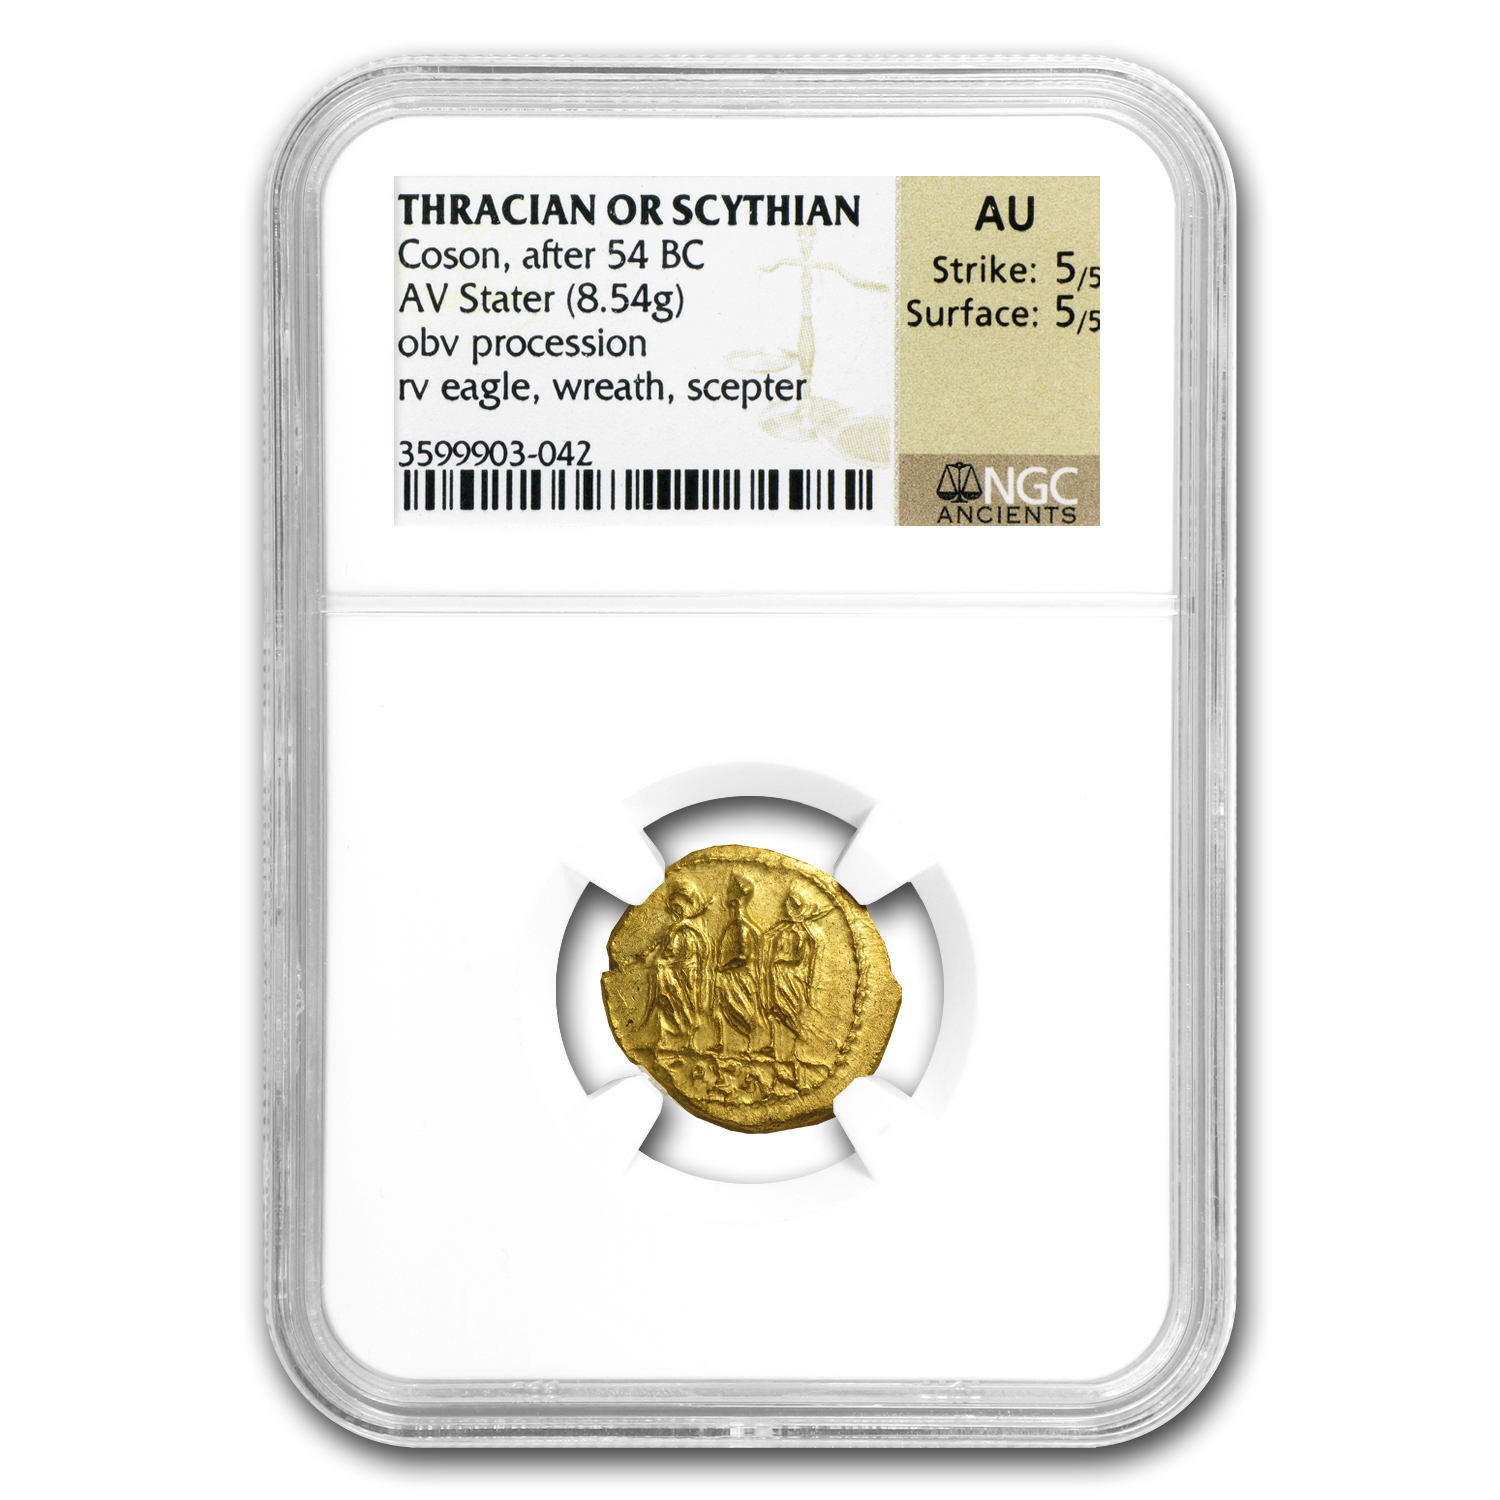 Thracian/Scythian Gold Stater (1st Cent. BC) AU-NGC